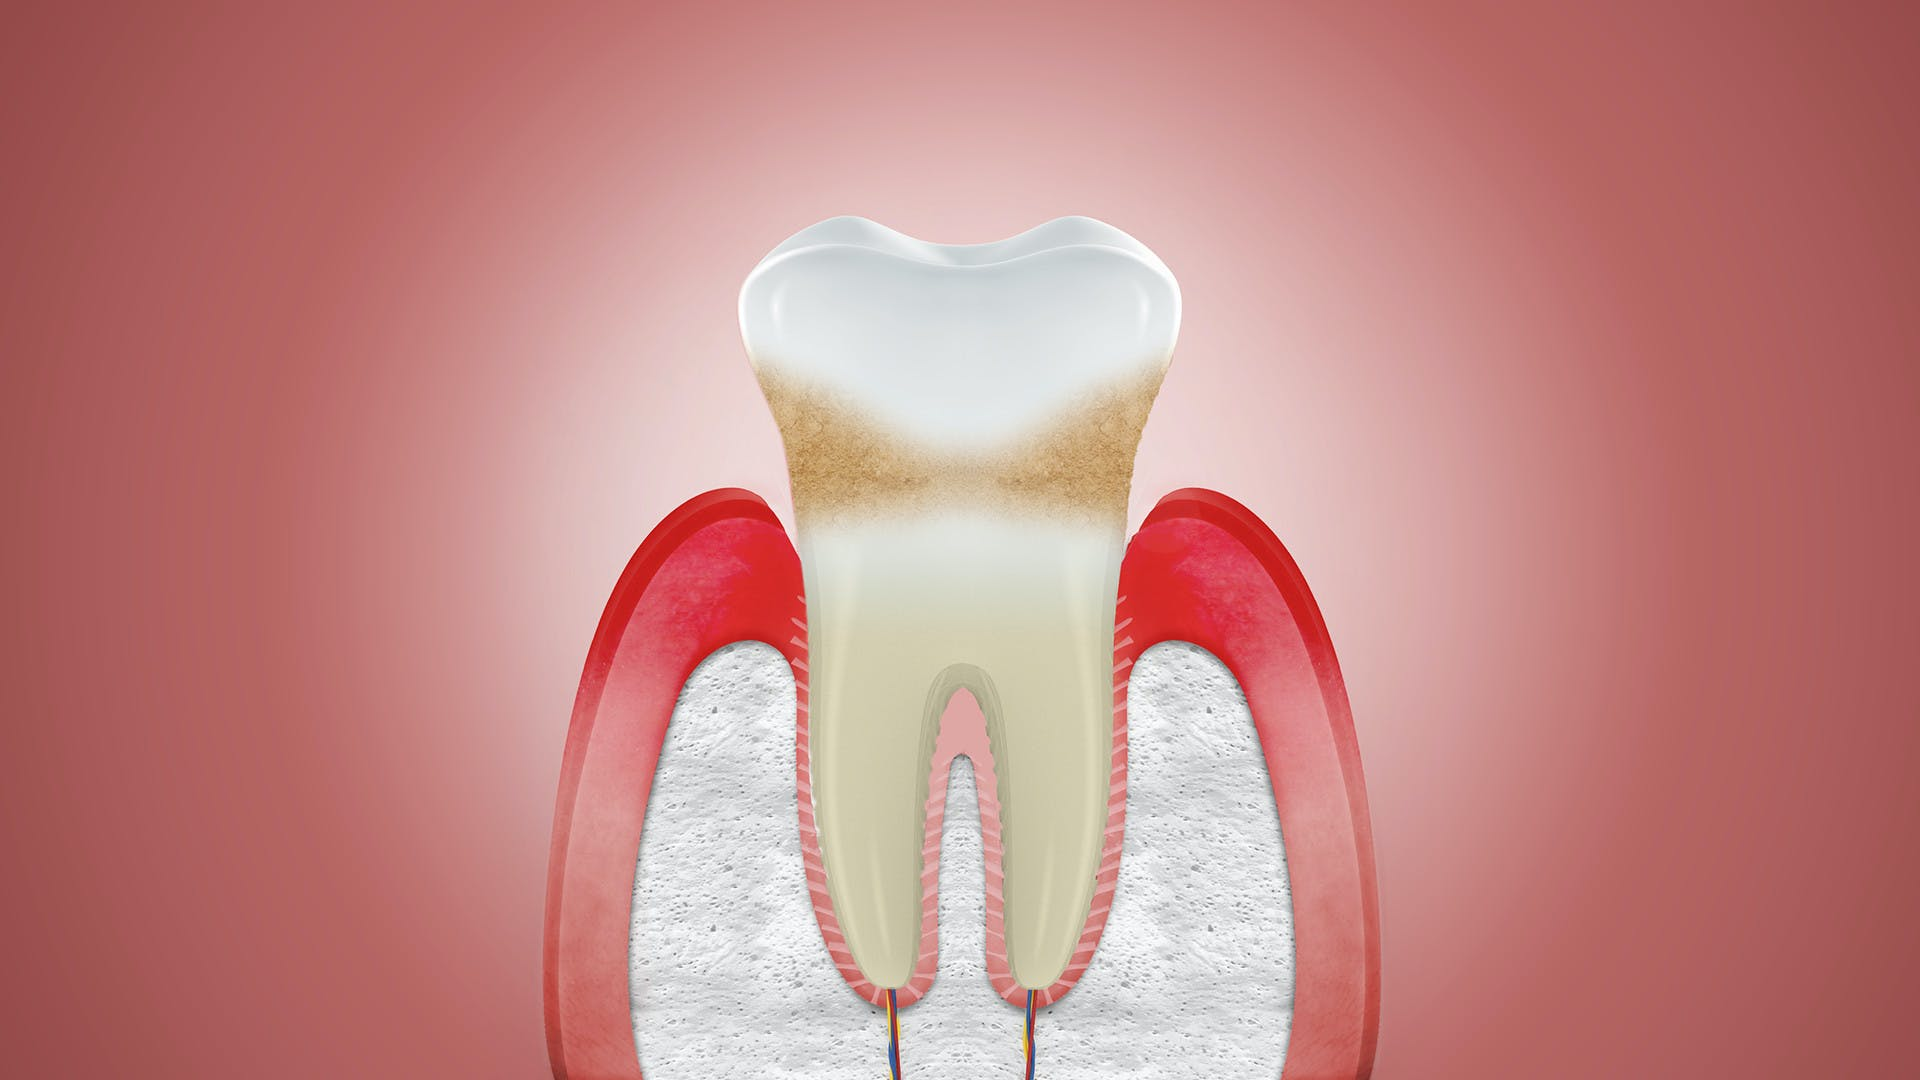 Illustration of receding gums